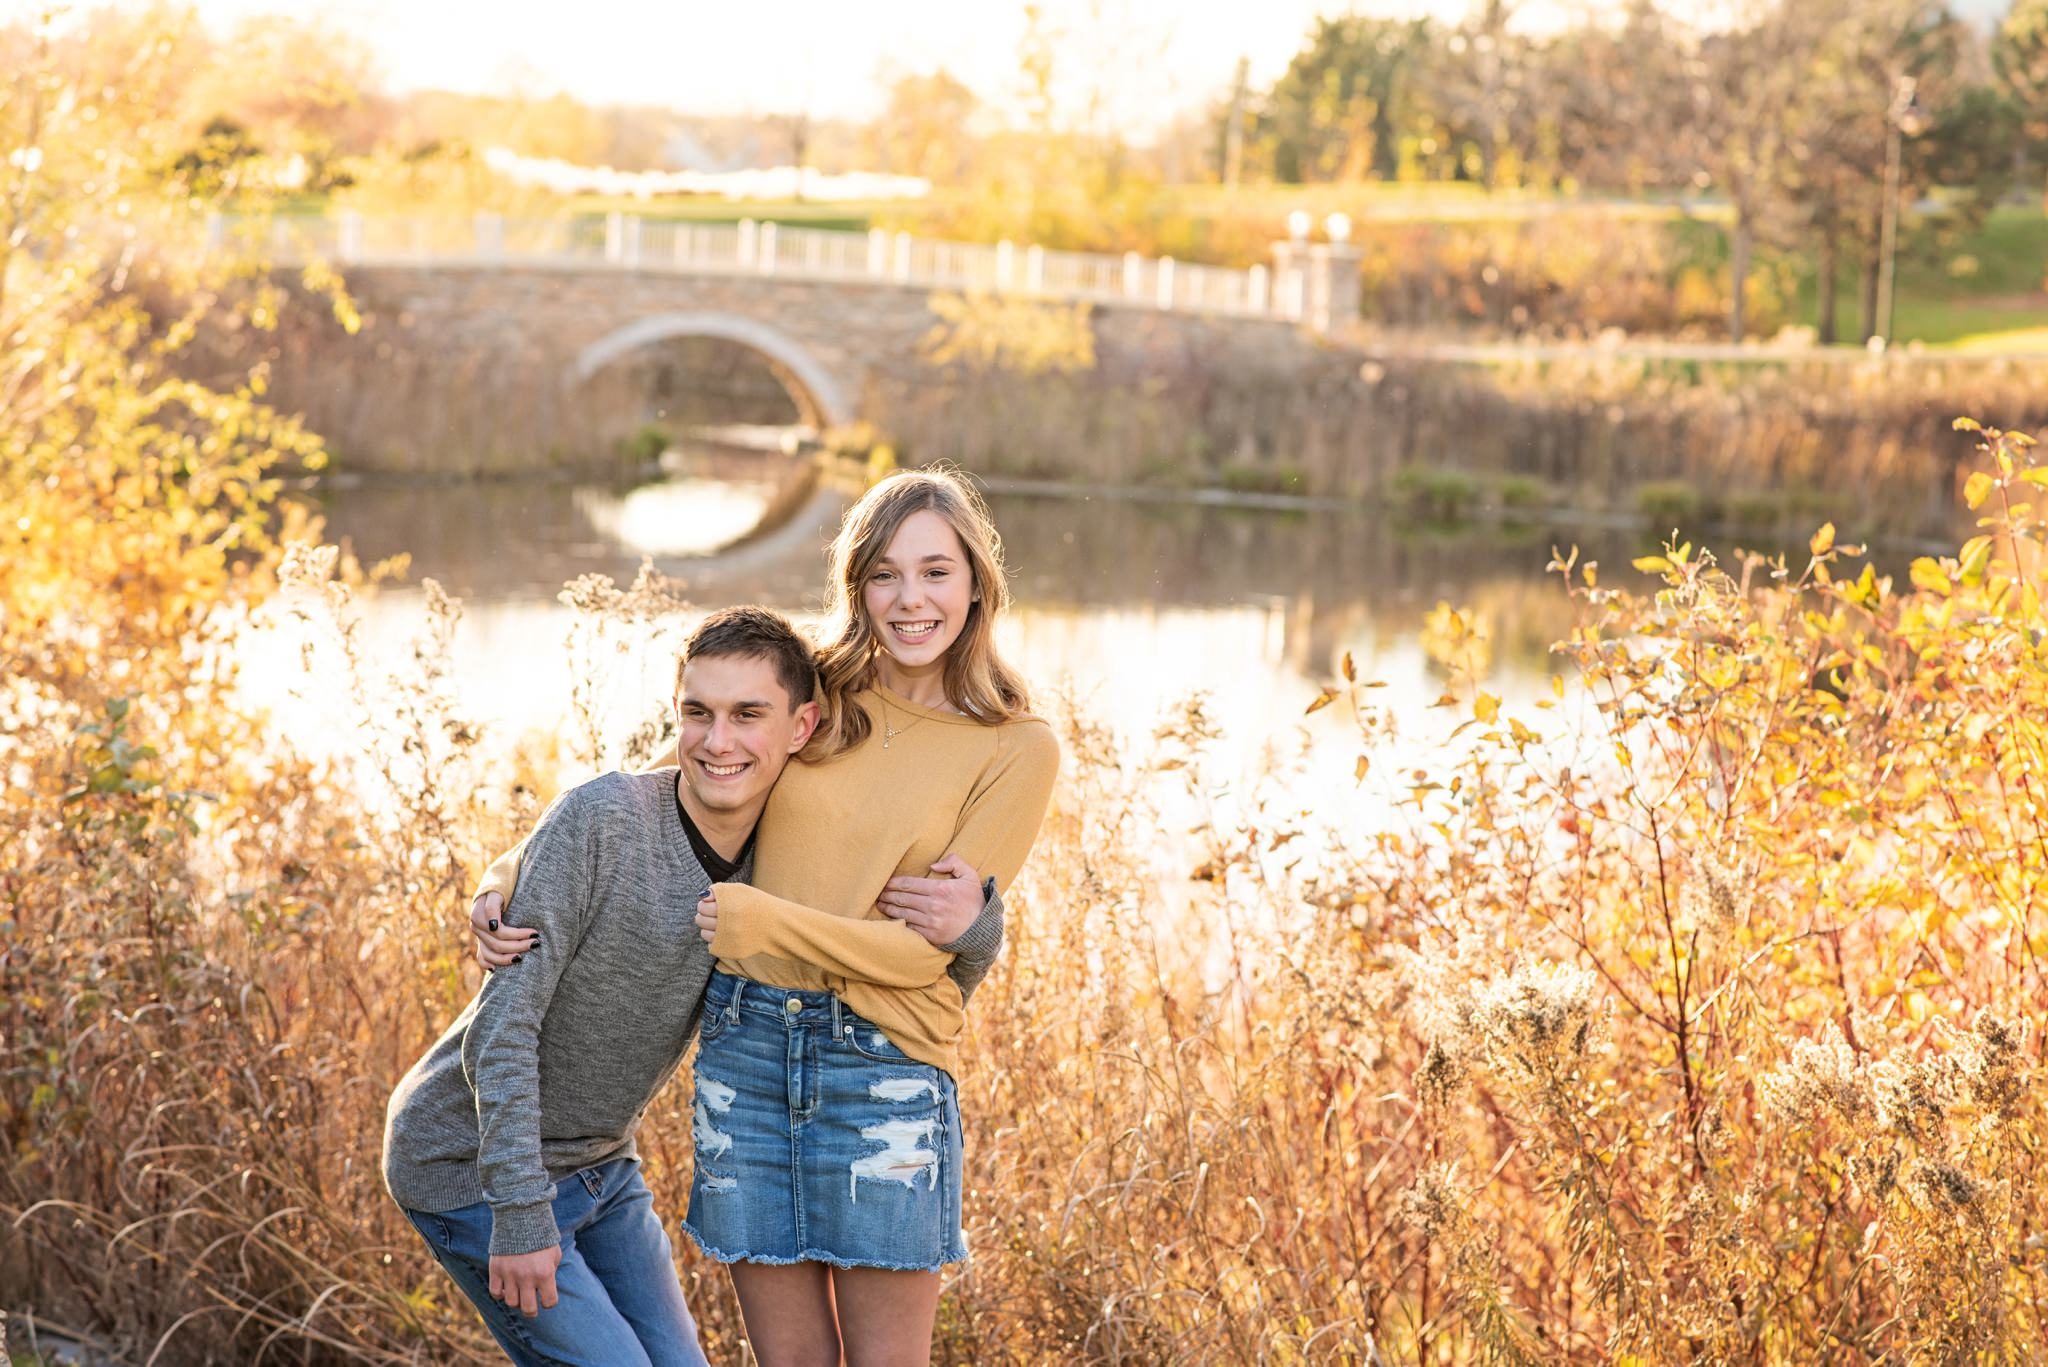 Wittwer-Family-Rotella-Photography-2018-14_WEB.jpg